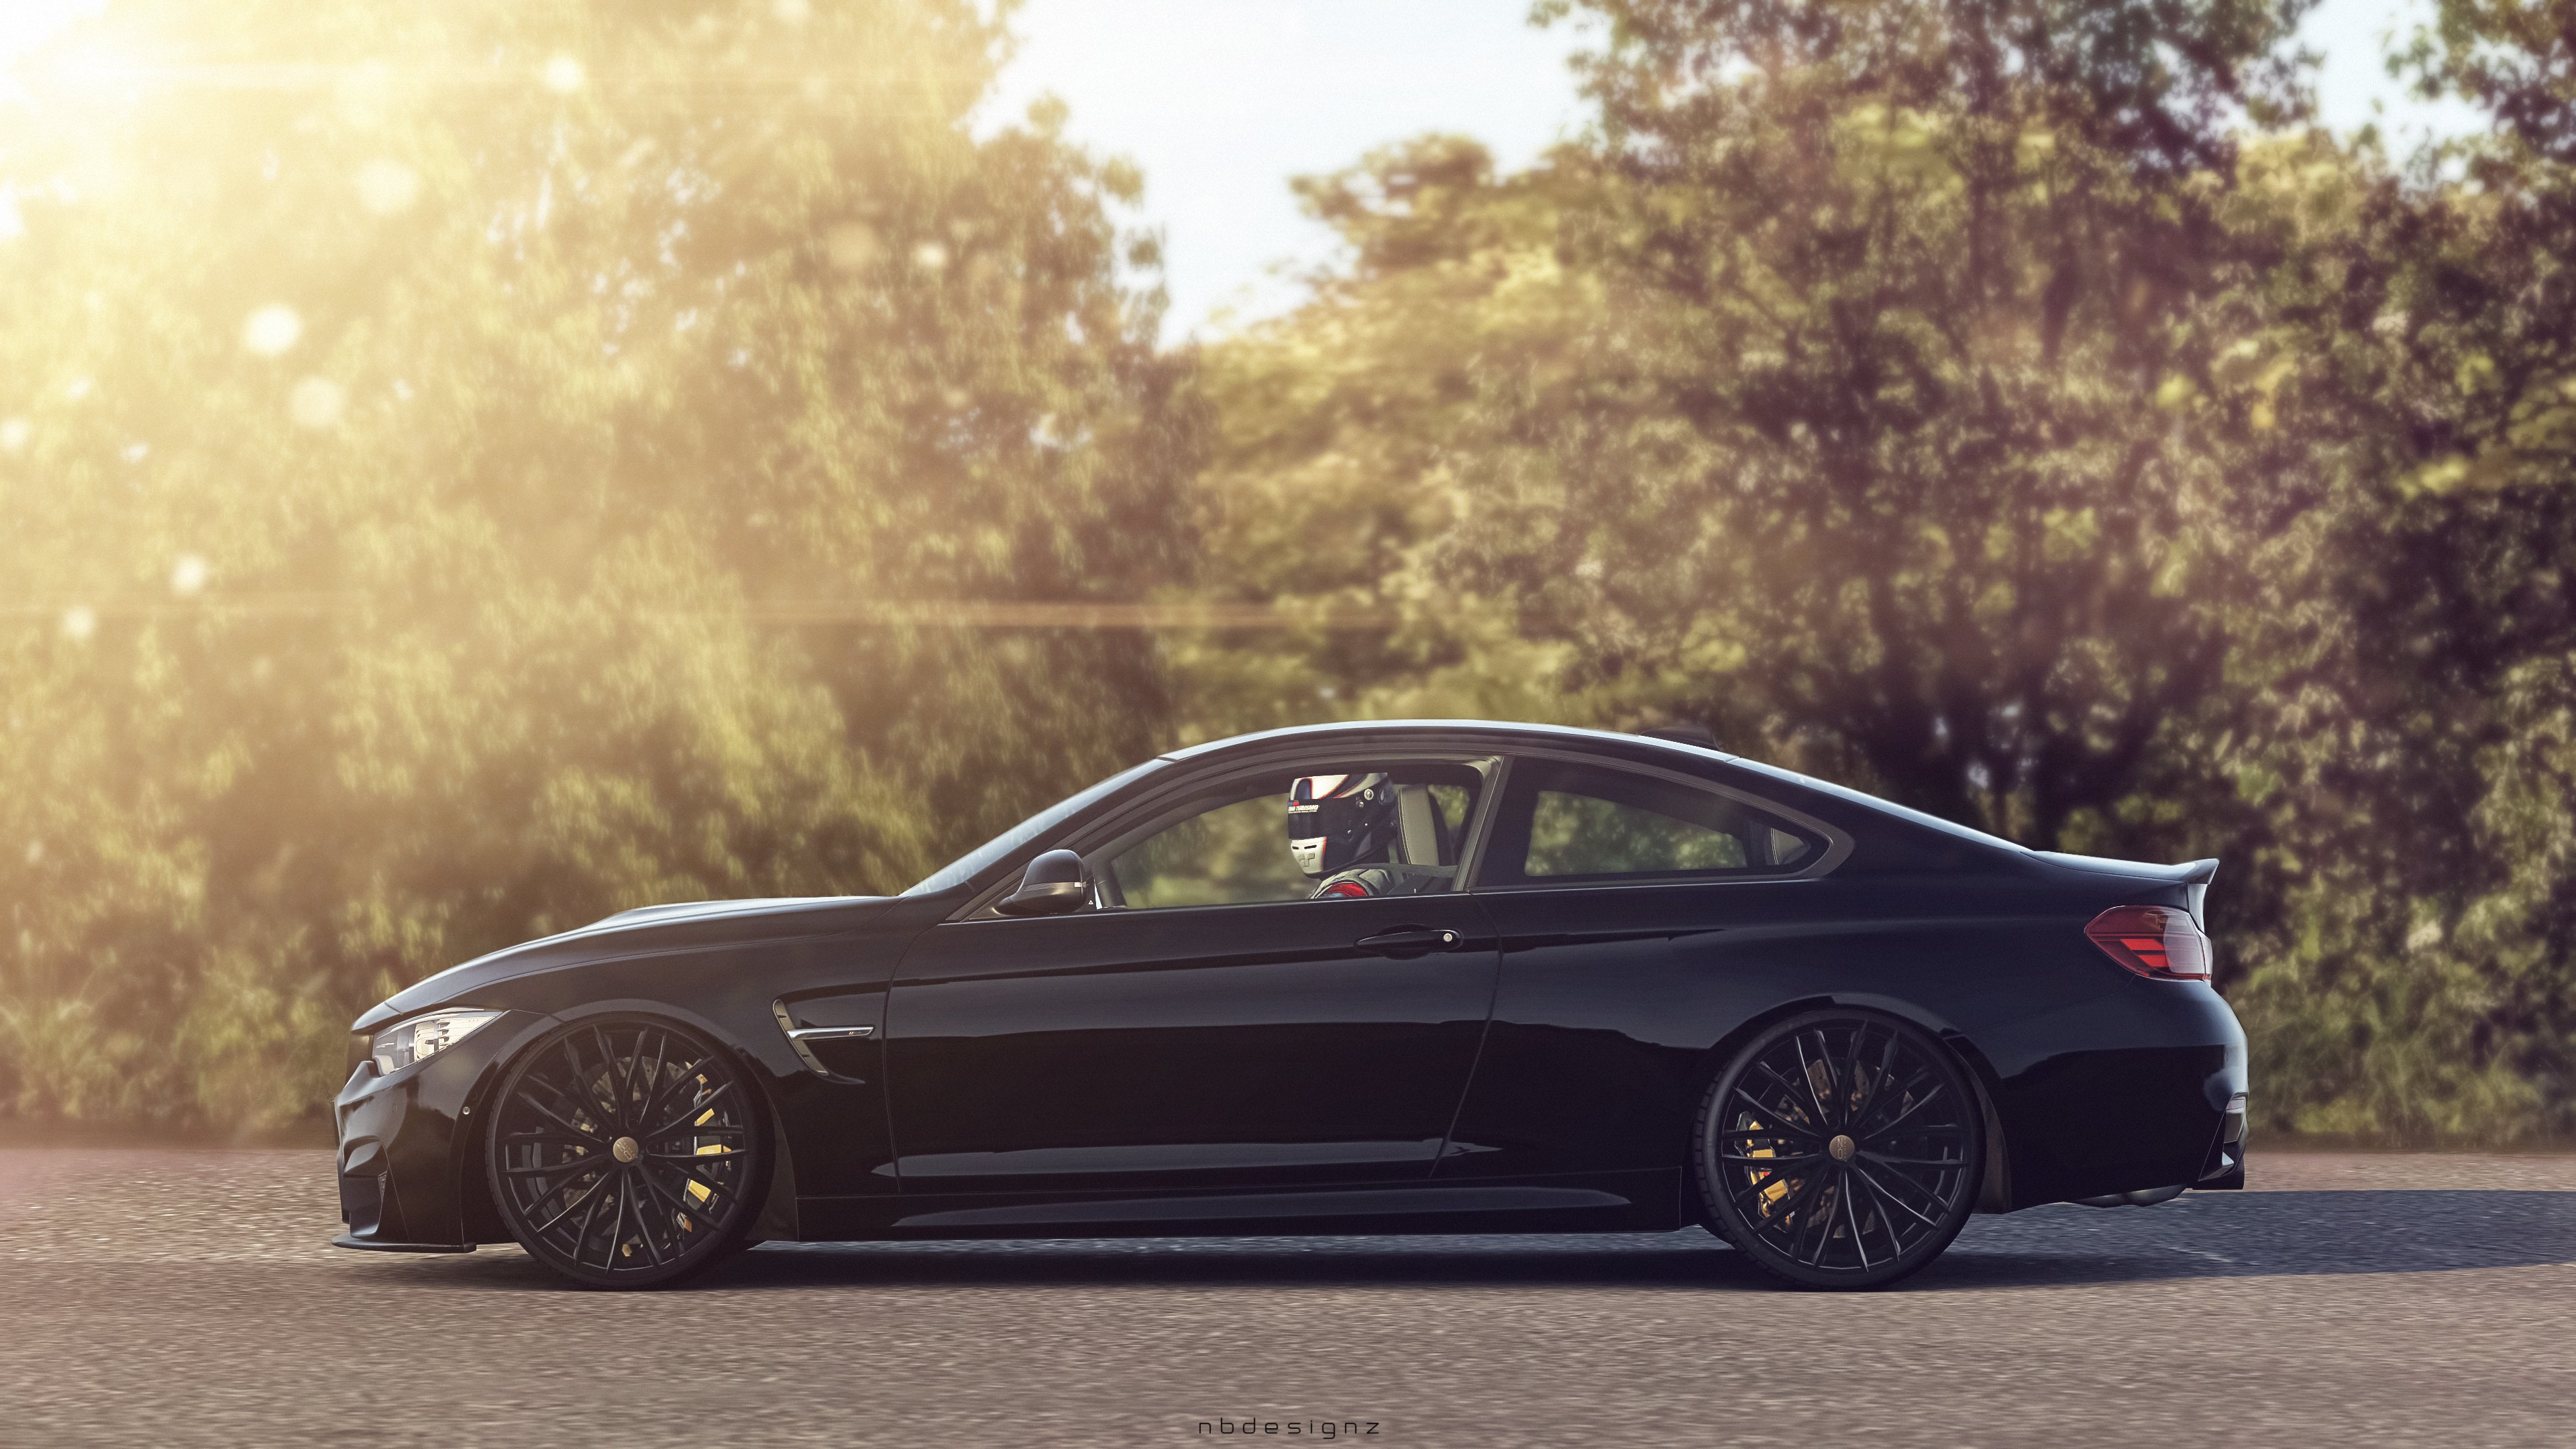 3840x2160 - BMW M4 Wallpapers 20